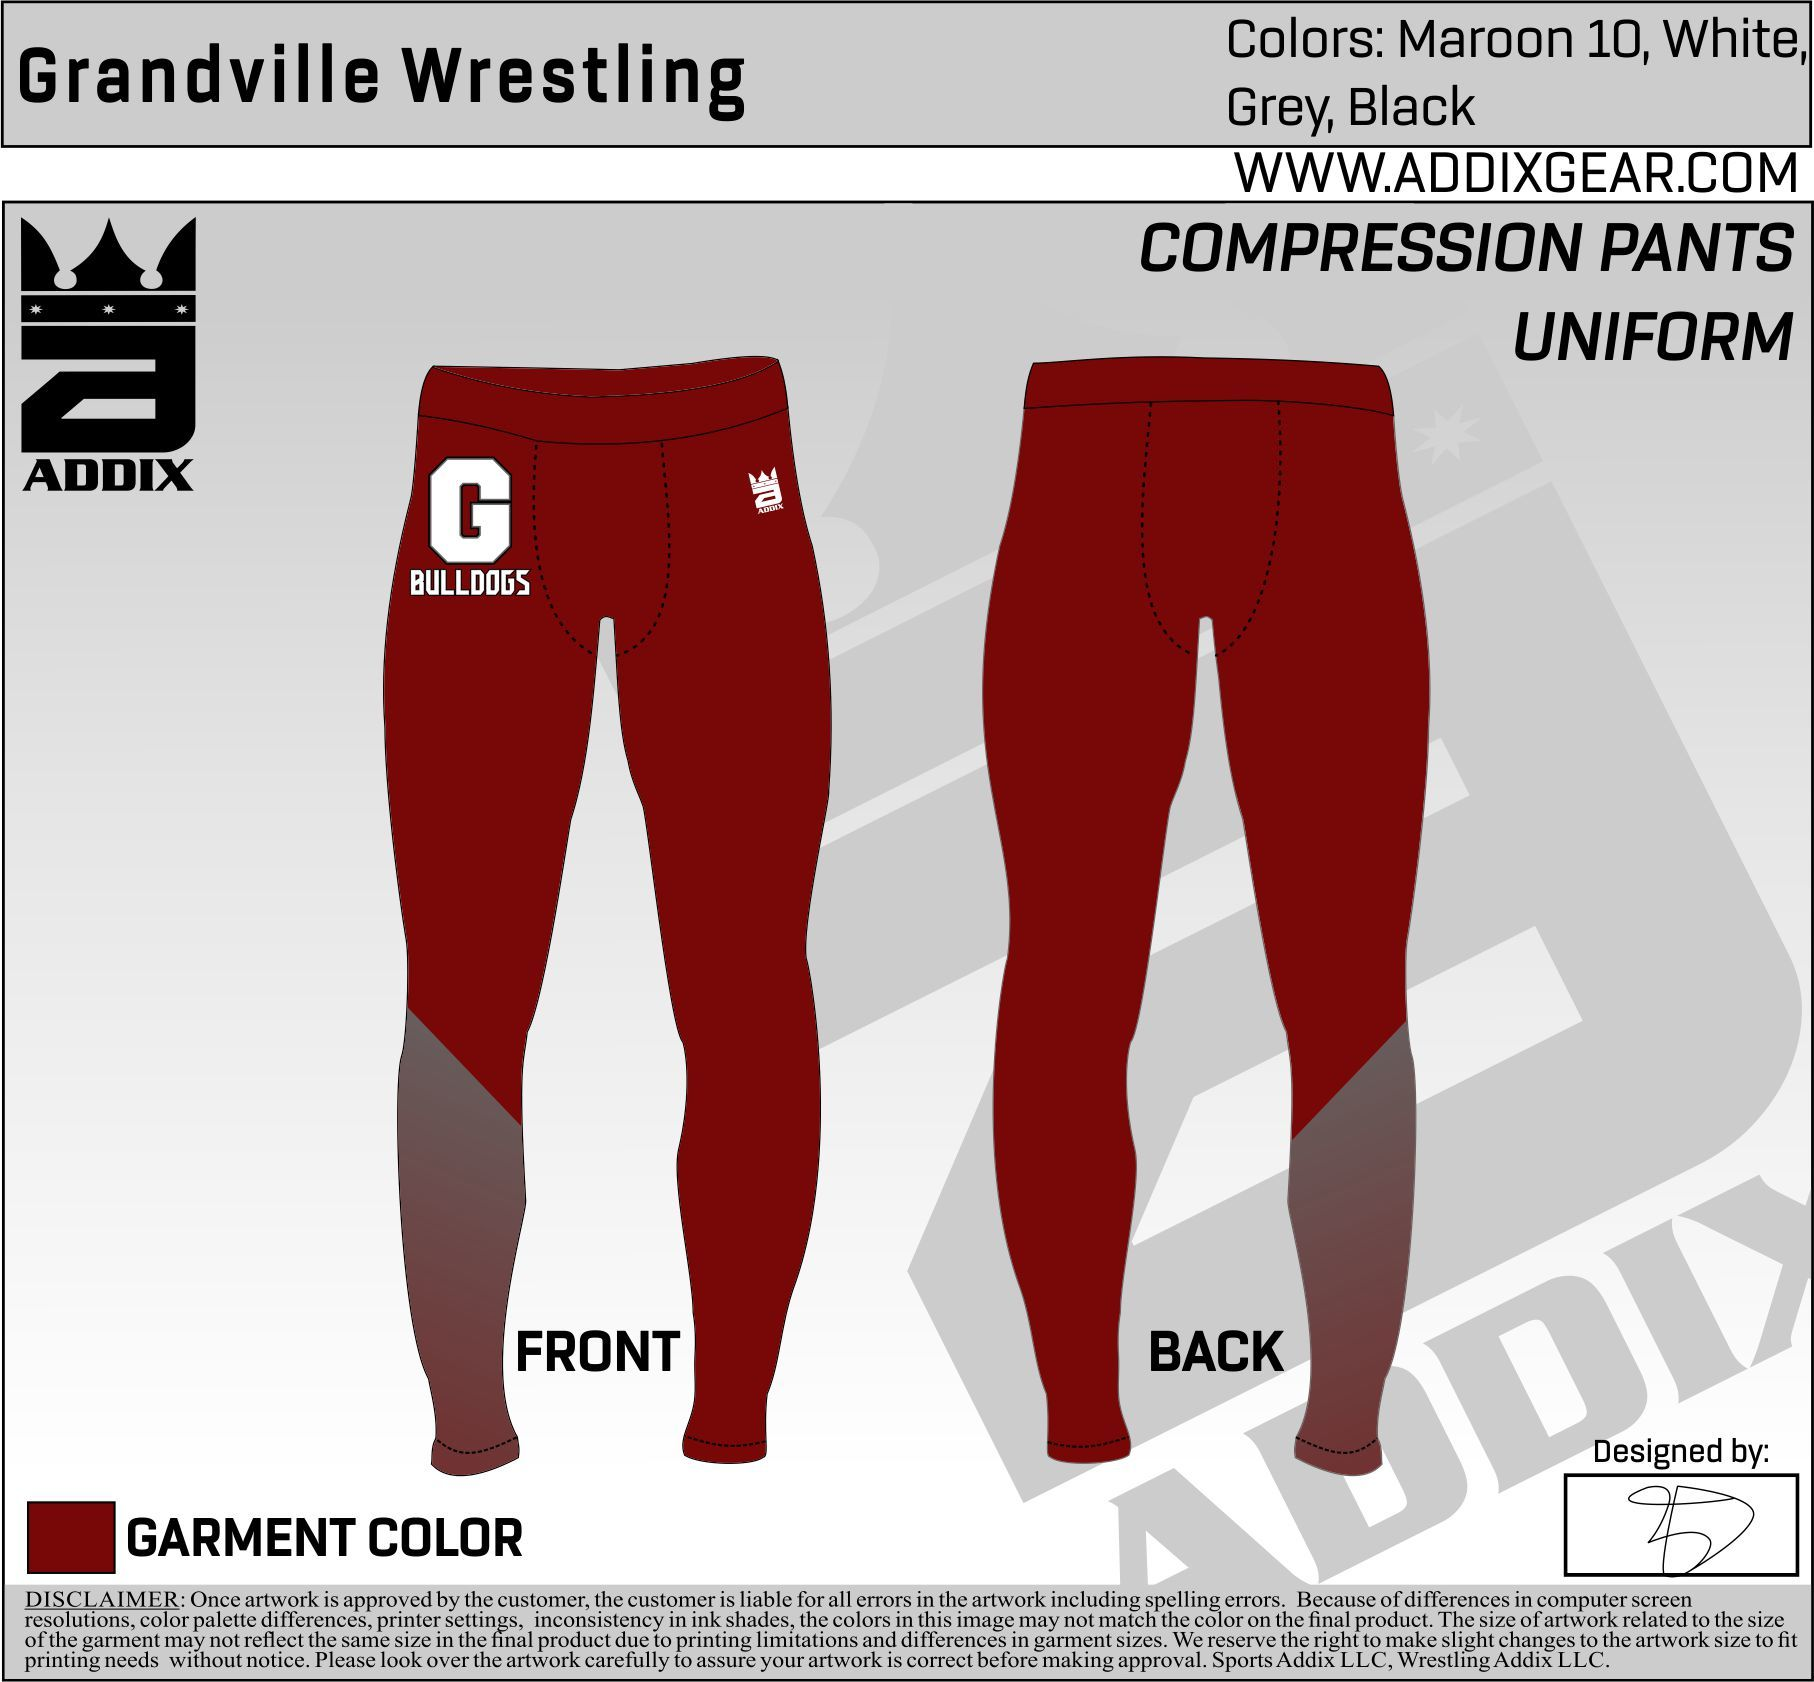 ZD_Grandville Wrestling_8-23-2017(Compression Pants)V2.jpg